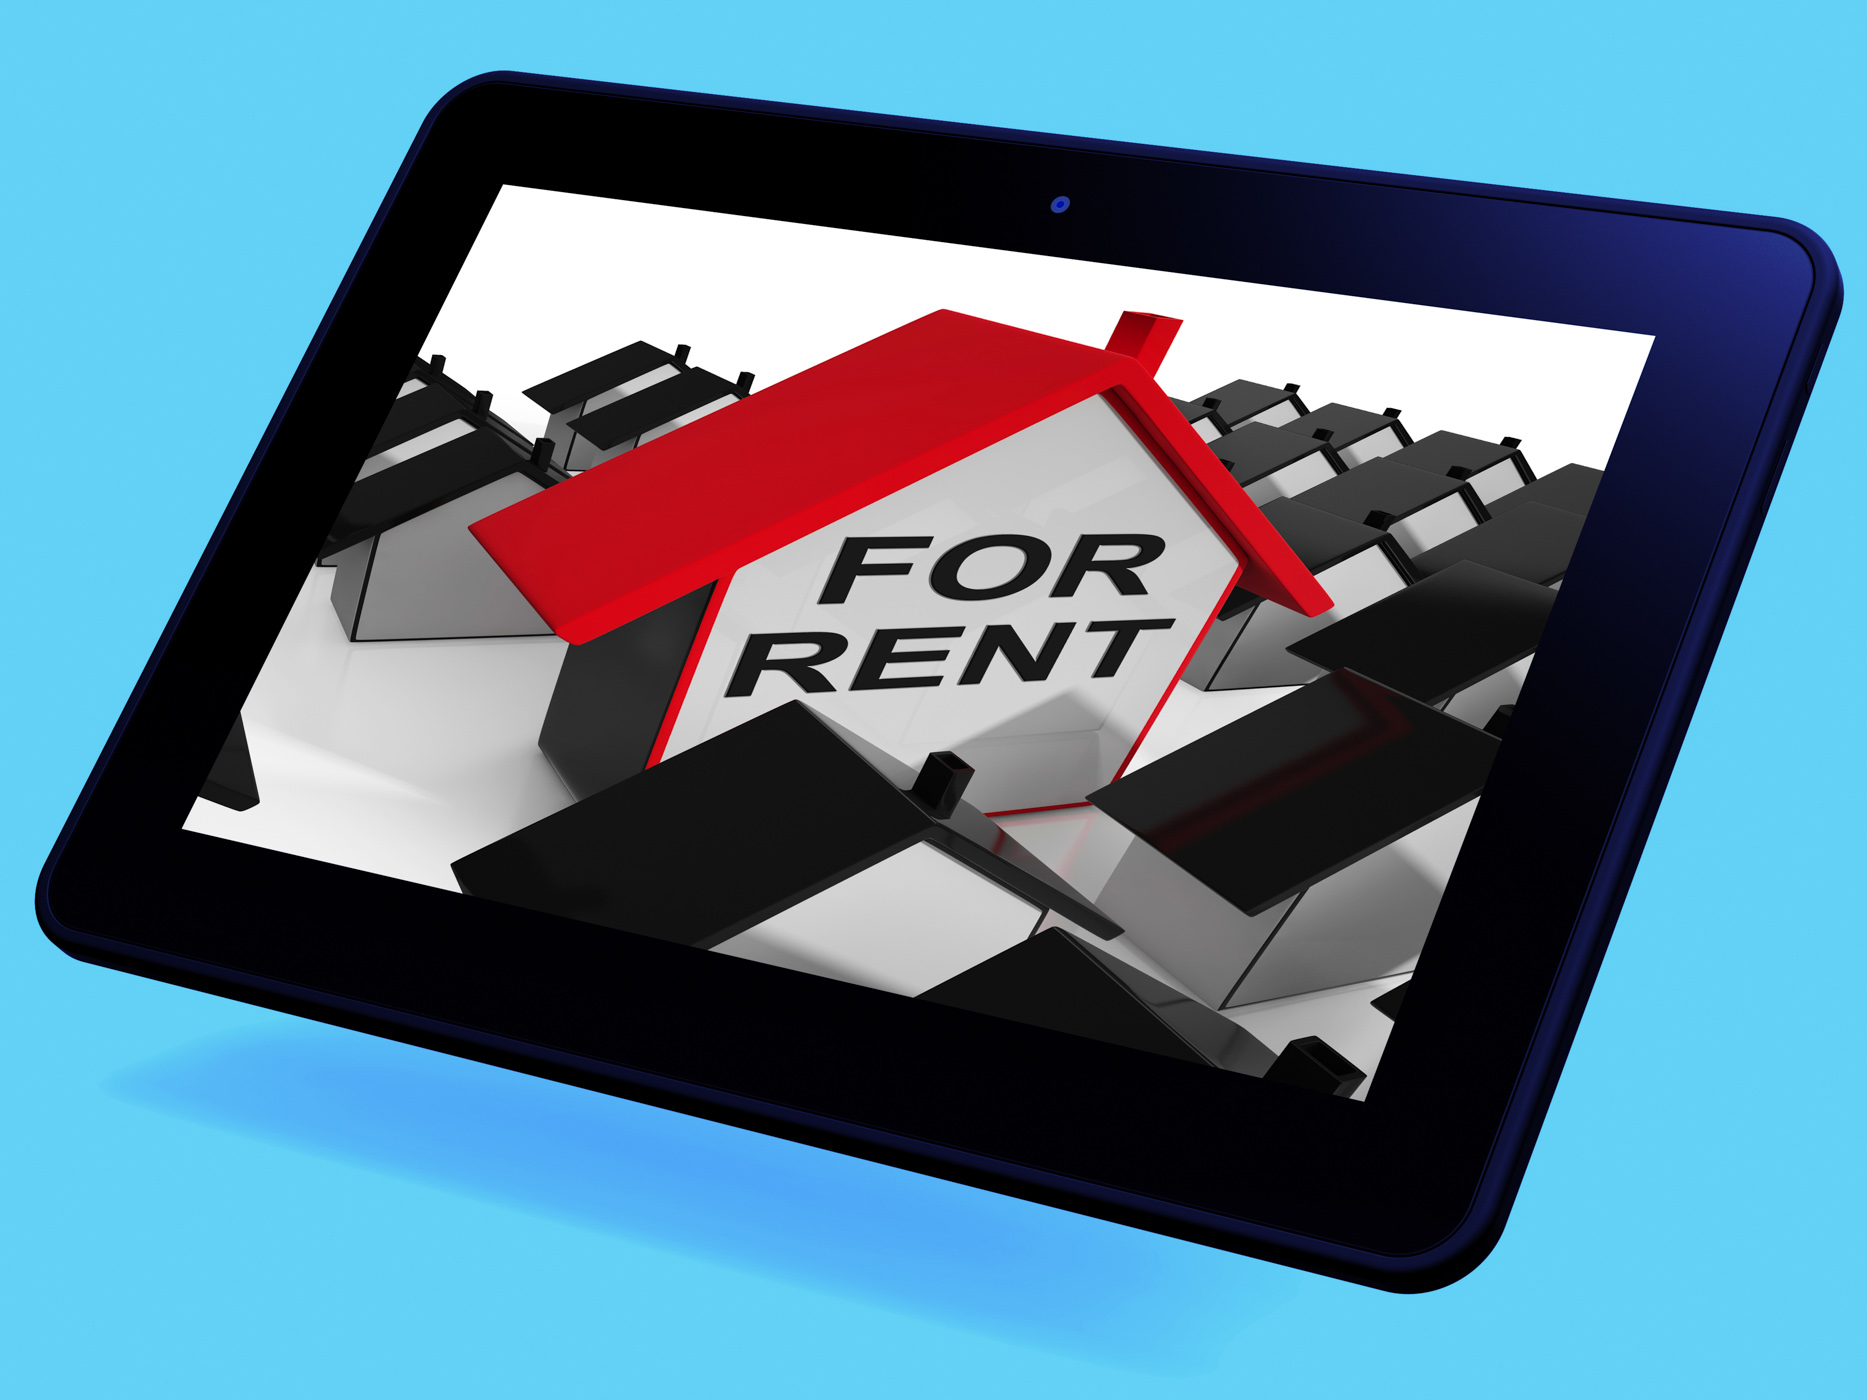 For Rent House Tablet Means Leasing To Tenants, Apartment, Rent, Web, Unit, HQ Photo